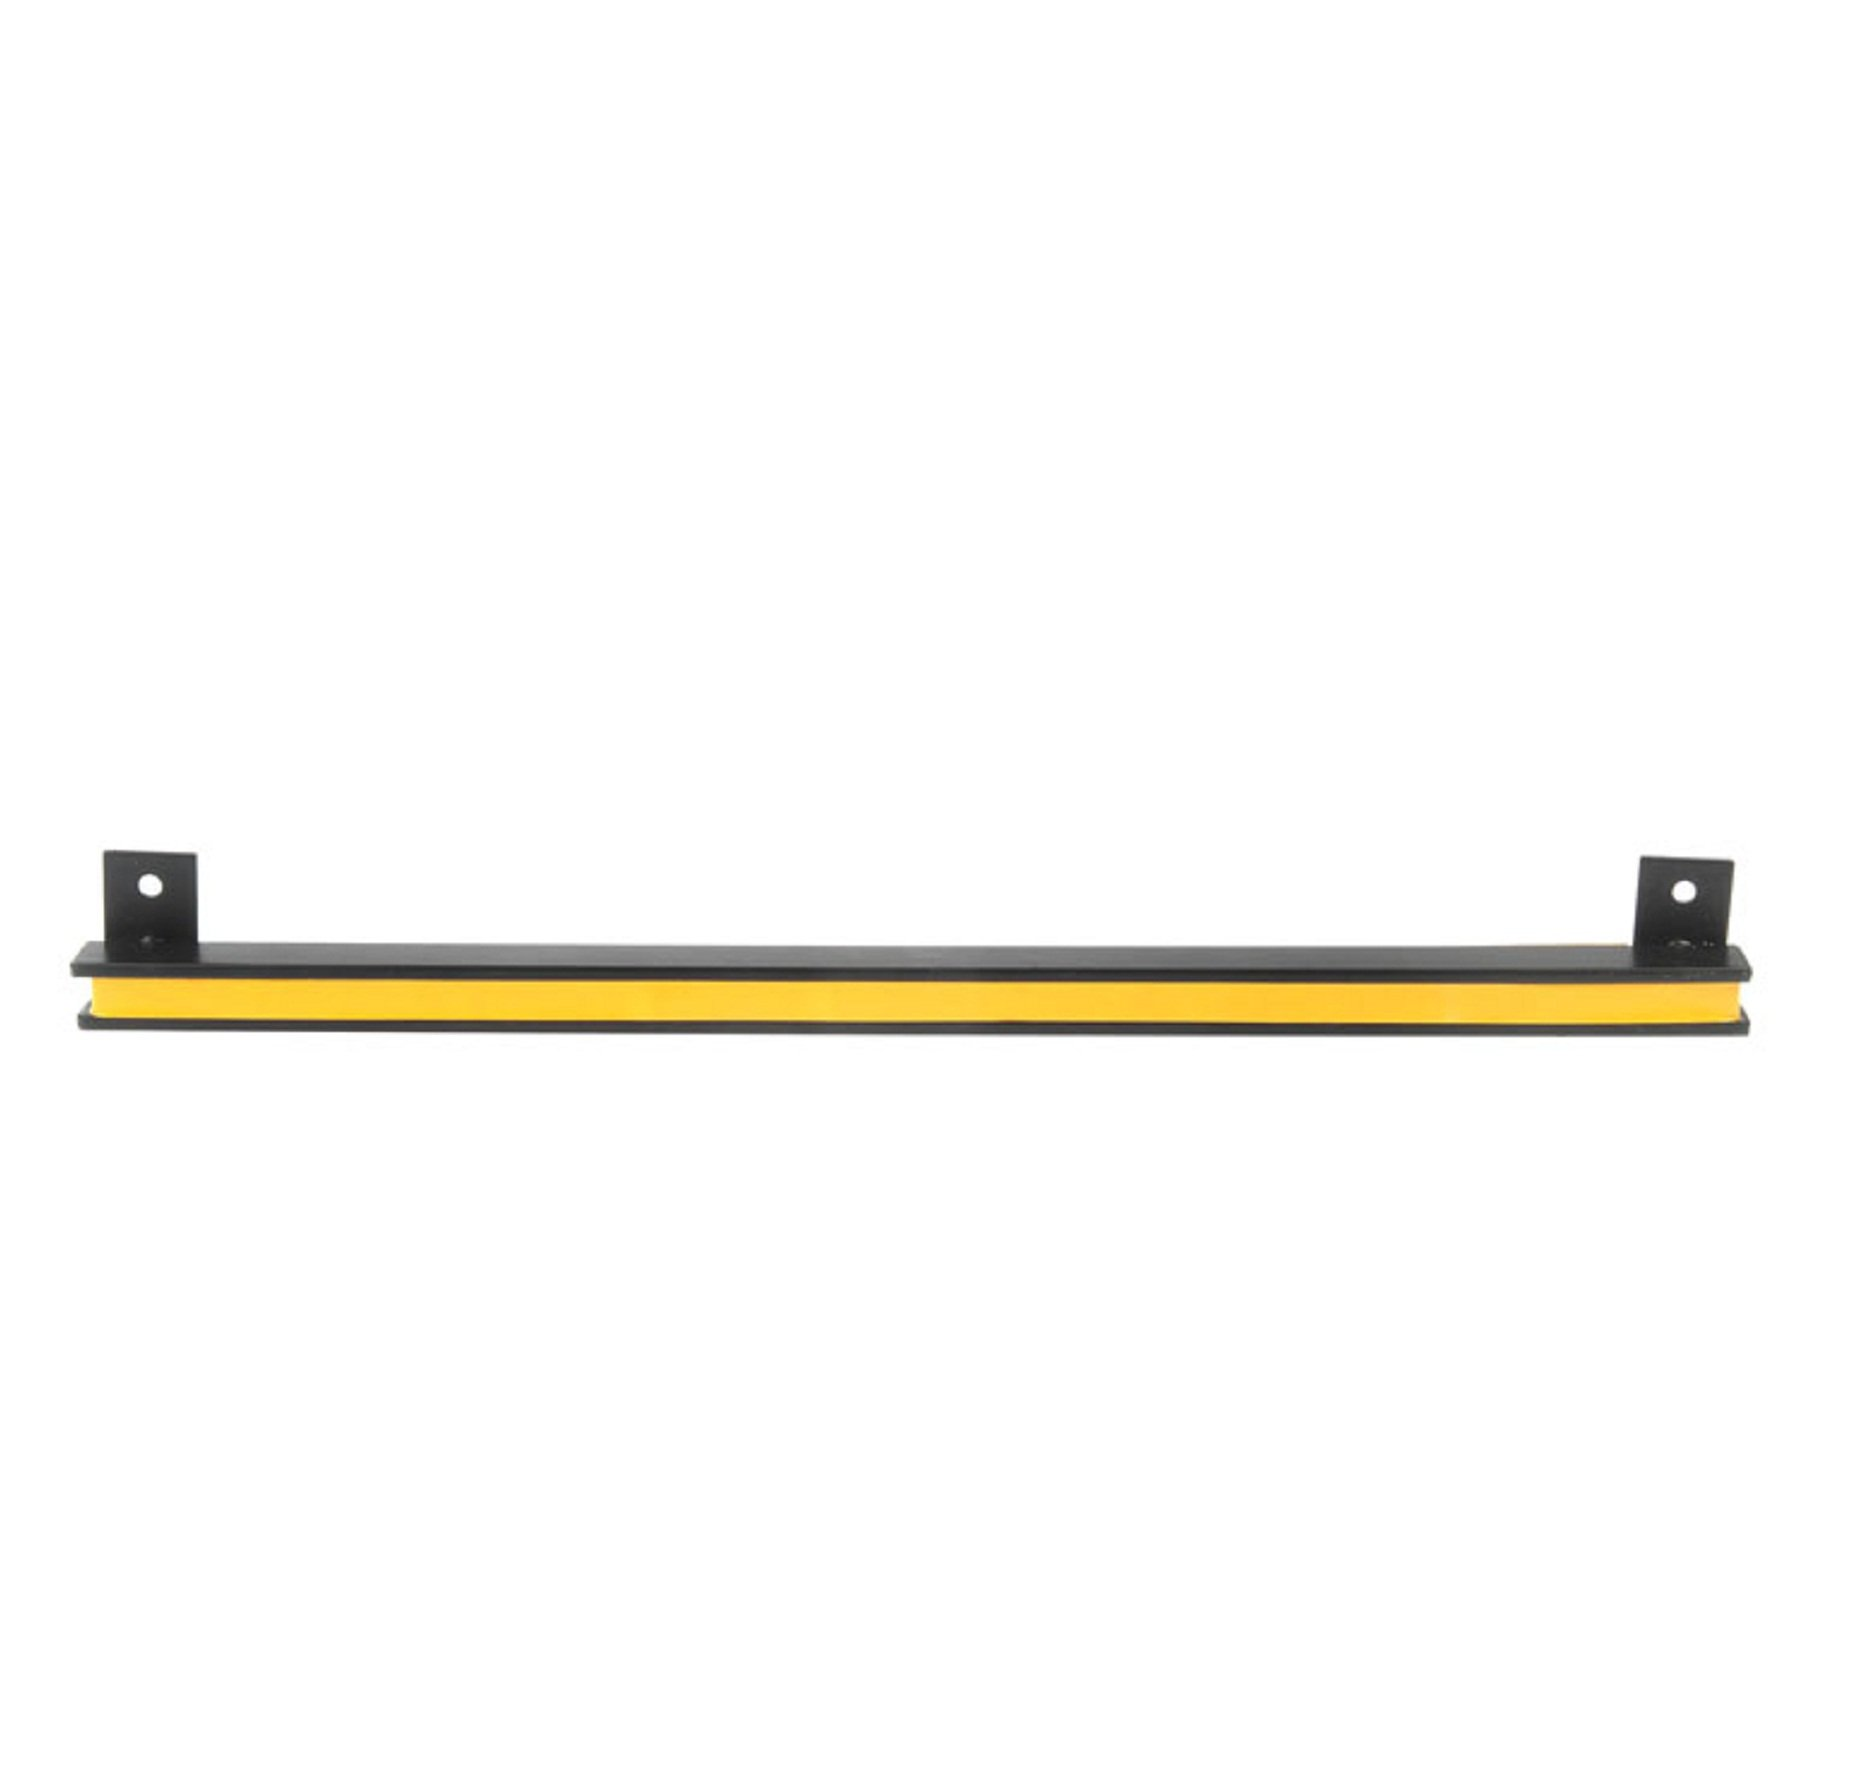 Dorman Hardware 4-9995 Magnetic Tool Bar, 16 Inch